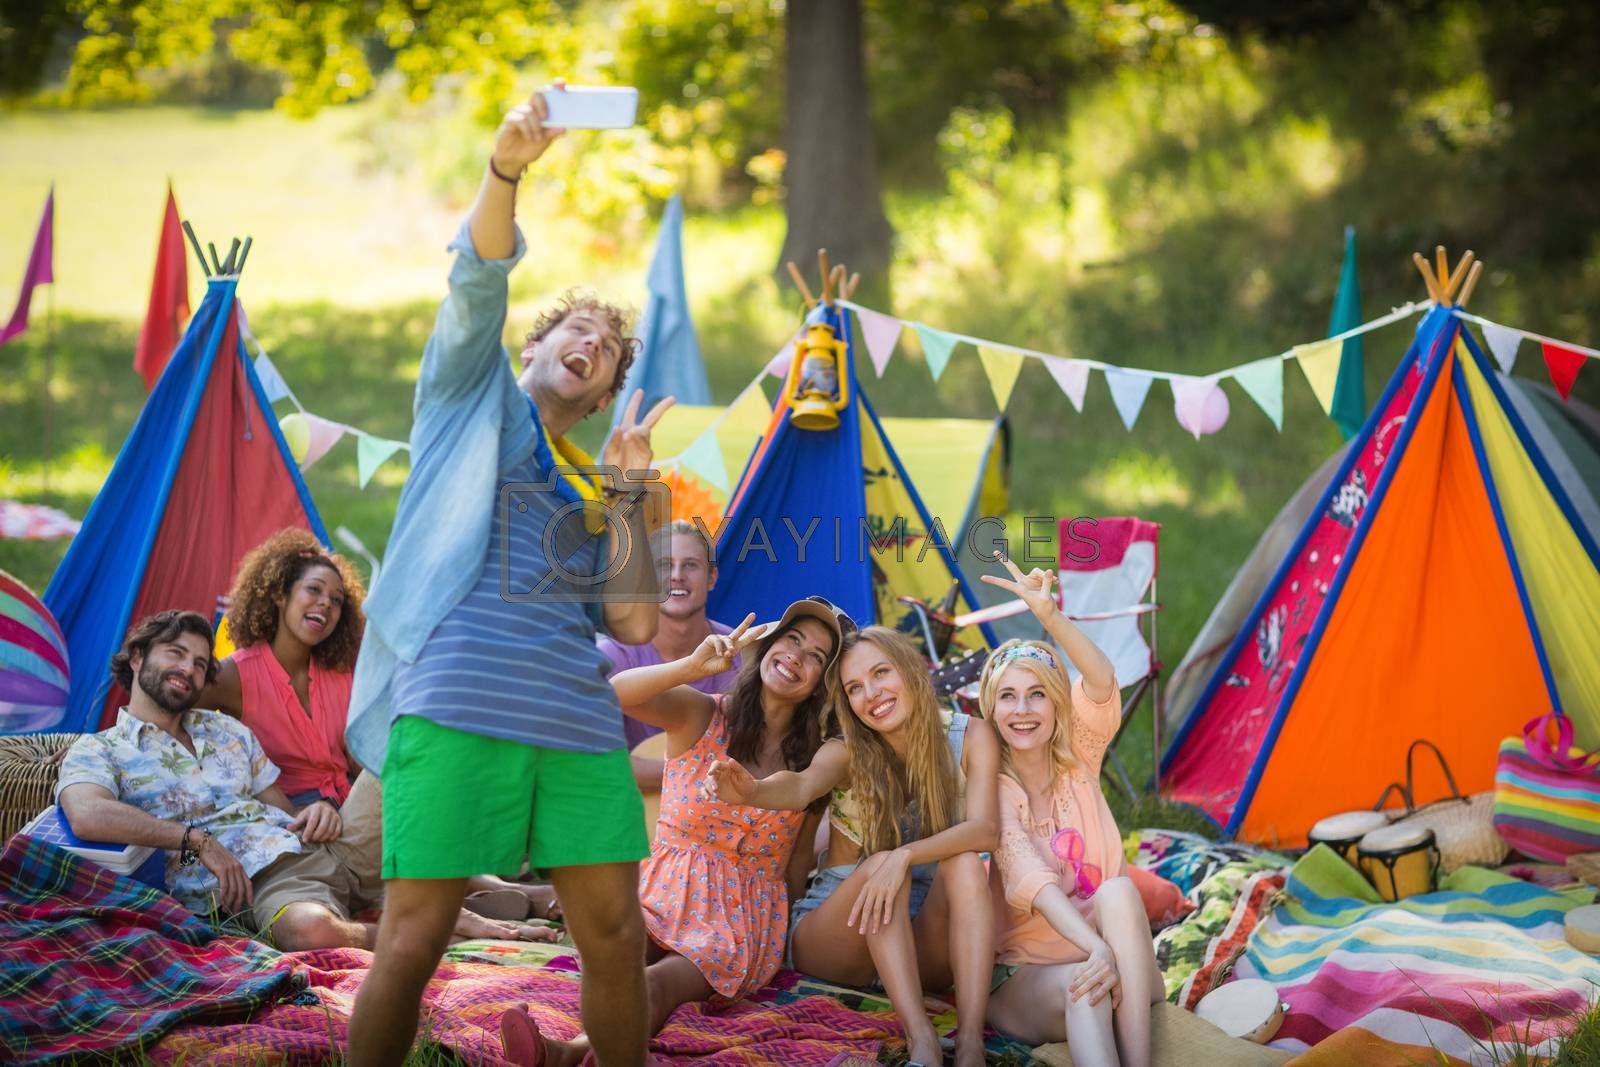 Man taking a selfie with friends at campsite on a sunny day